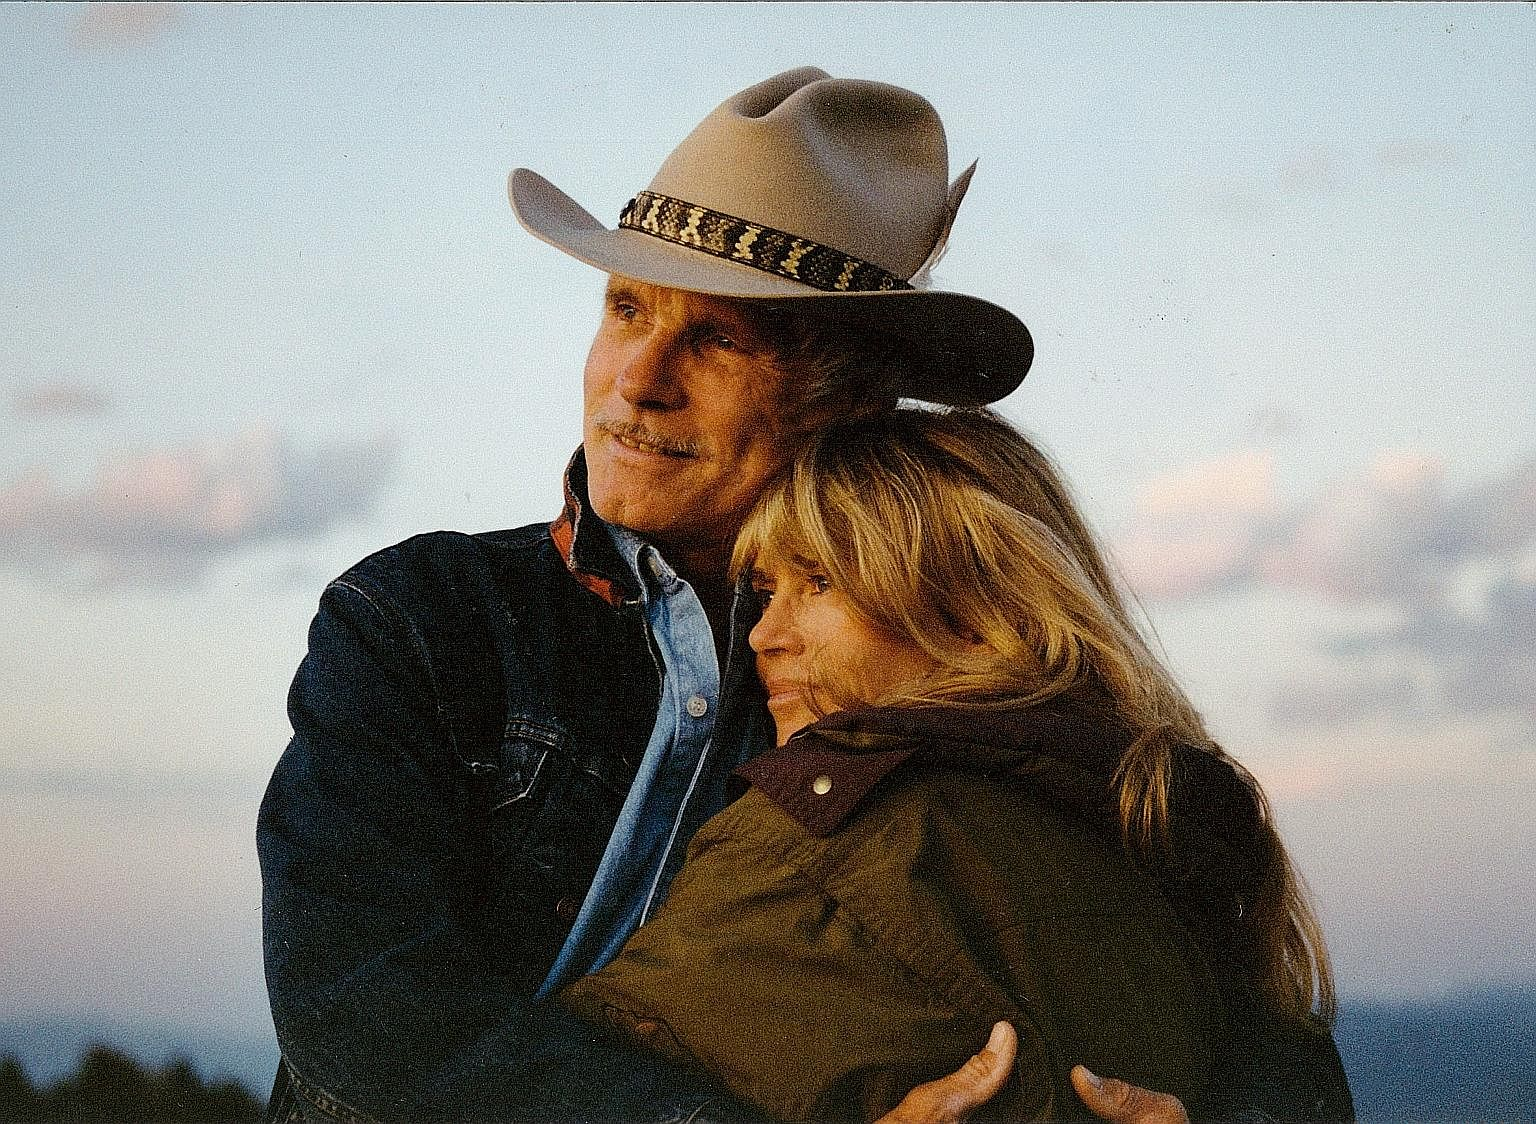 Jane Fonda and ex-husband Ted Turner in Jane Fonda In Five Acts (above) and J.D. Pardo in Mayans M.C.